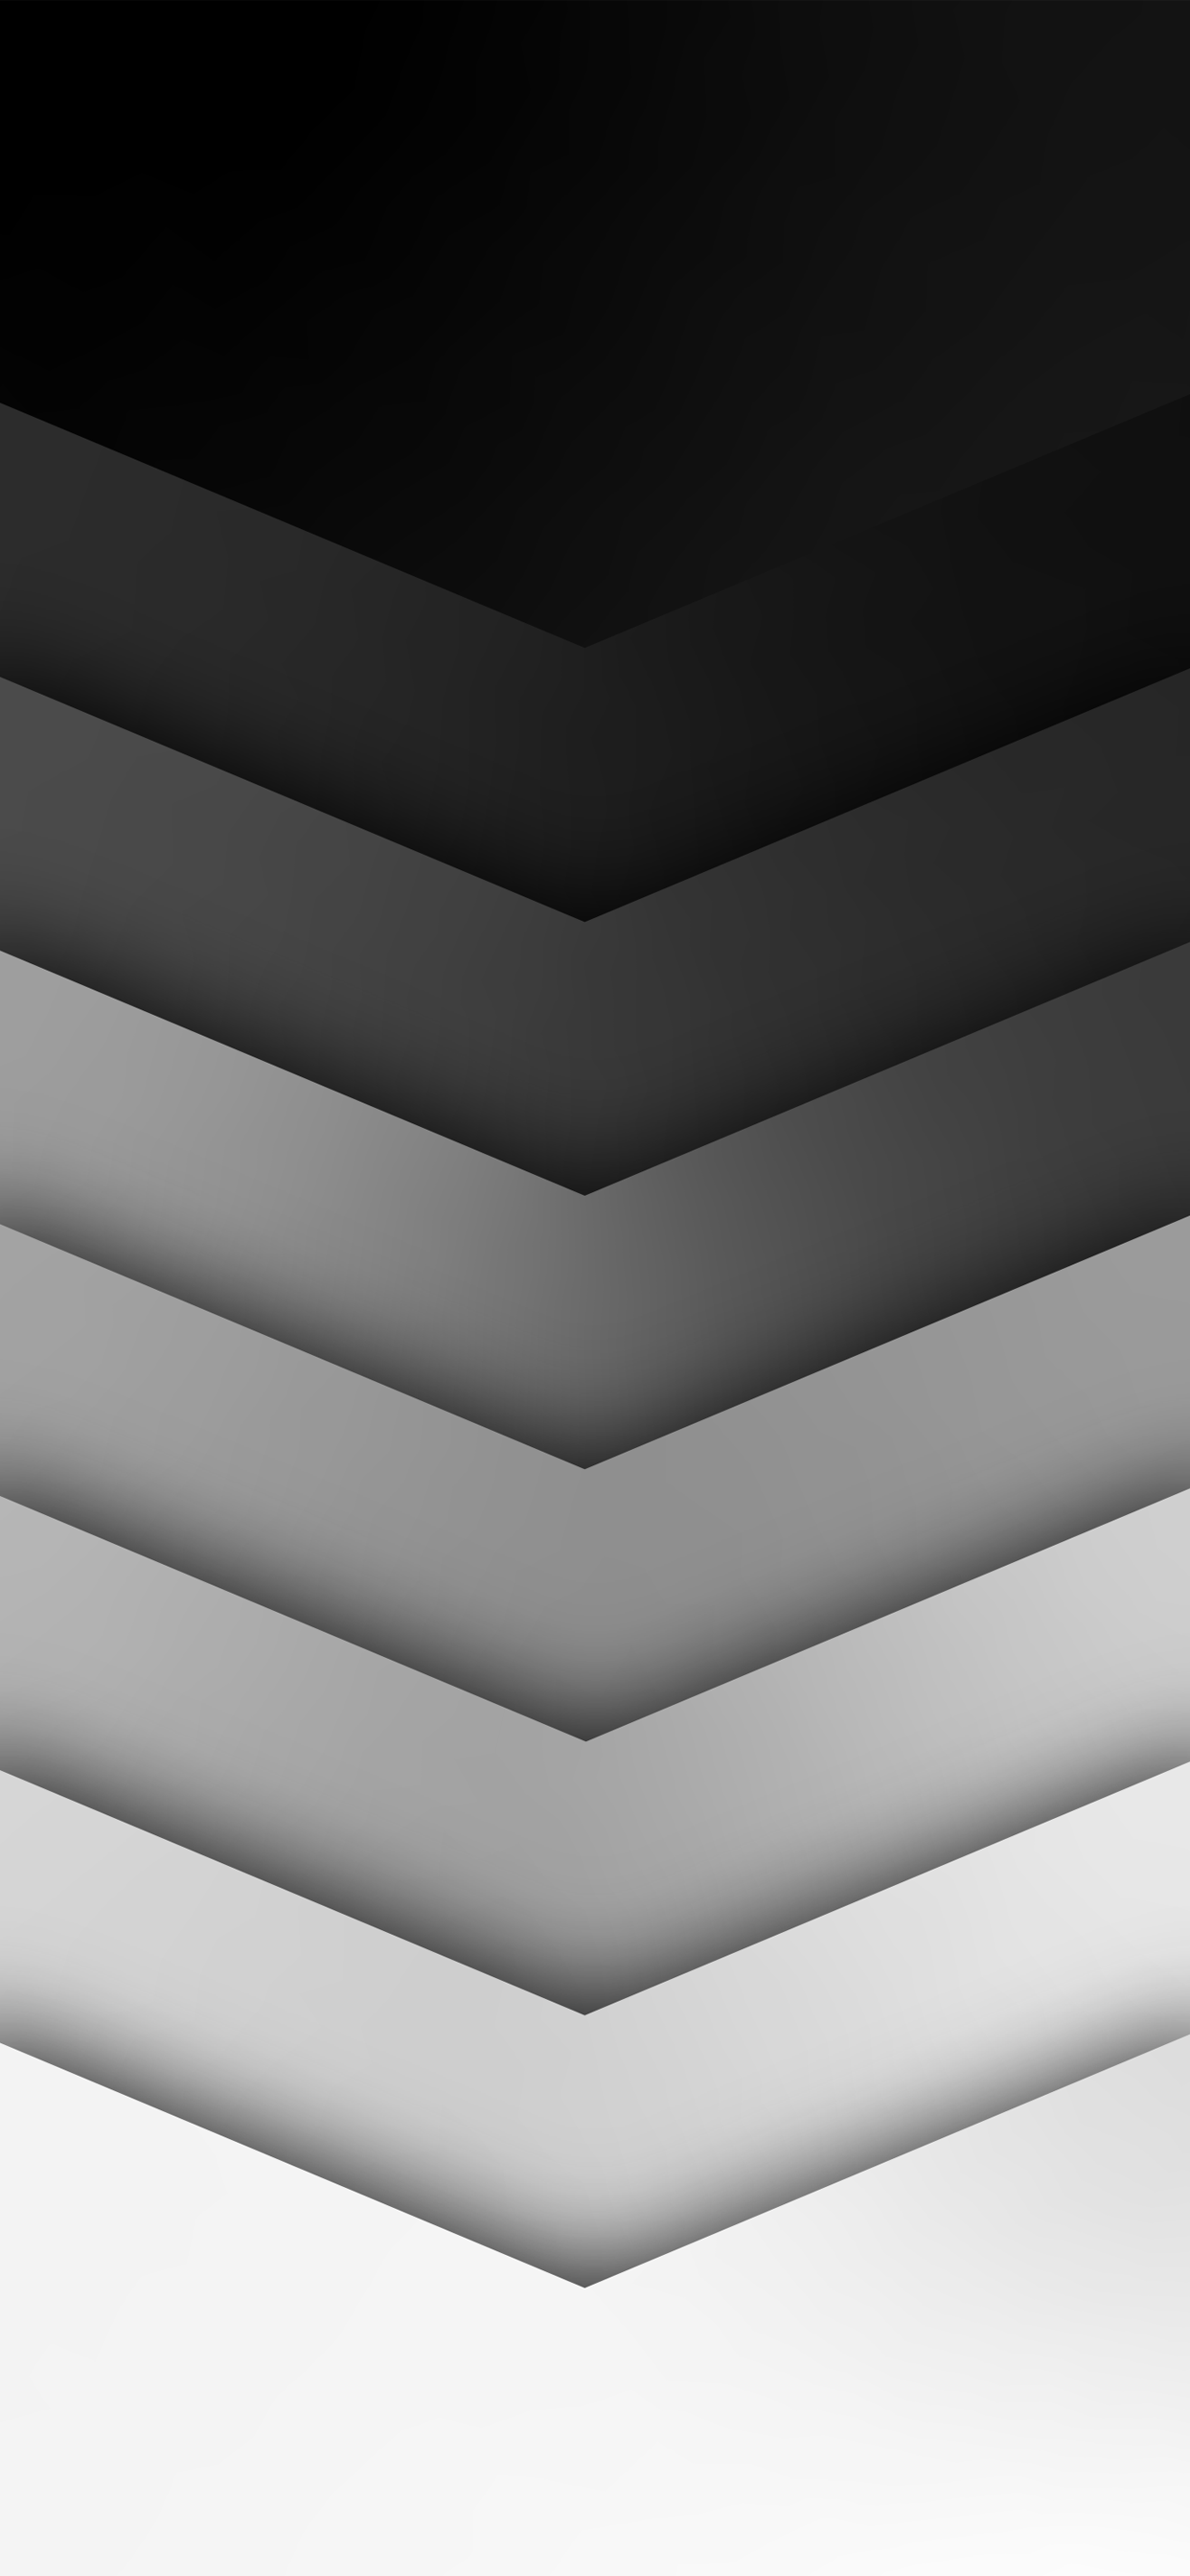 White dark pattern iphone wallpaper arthur schrinemacher